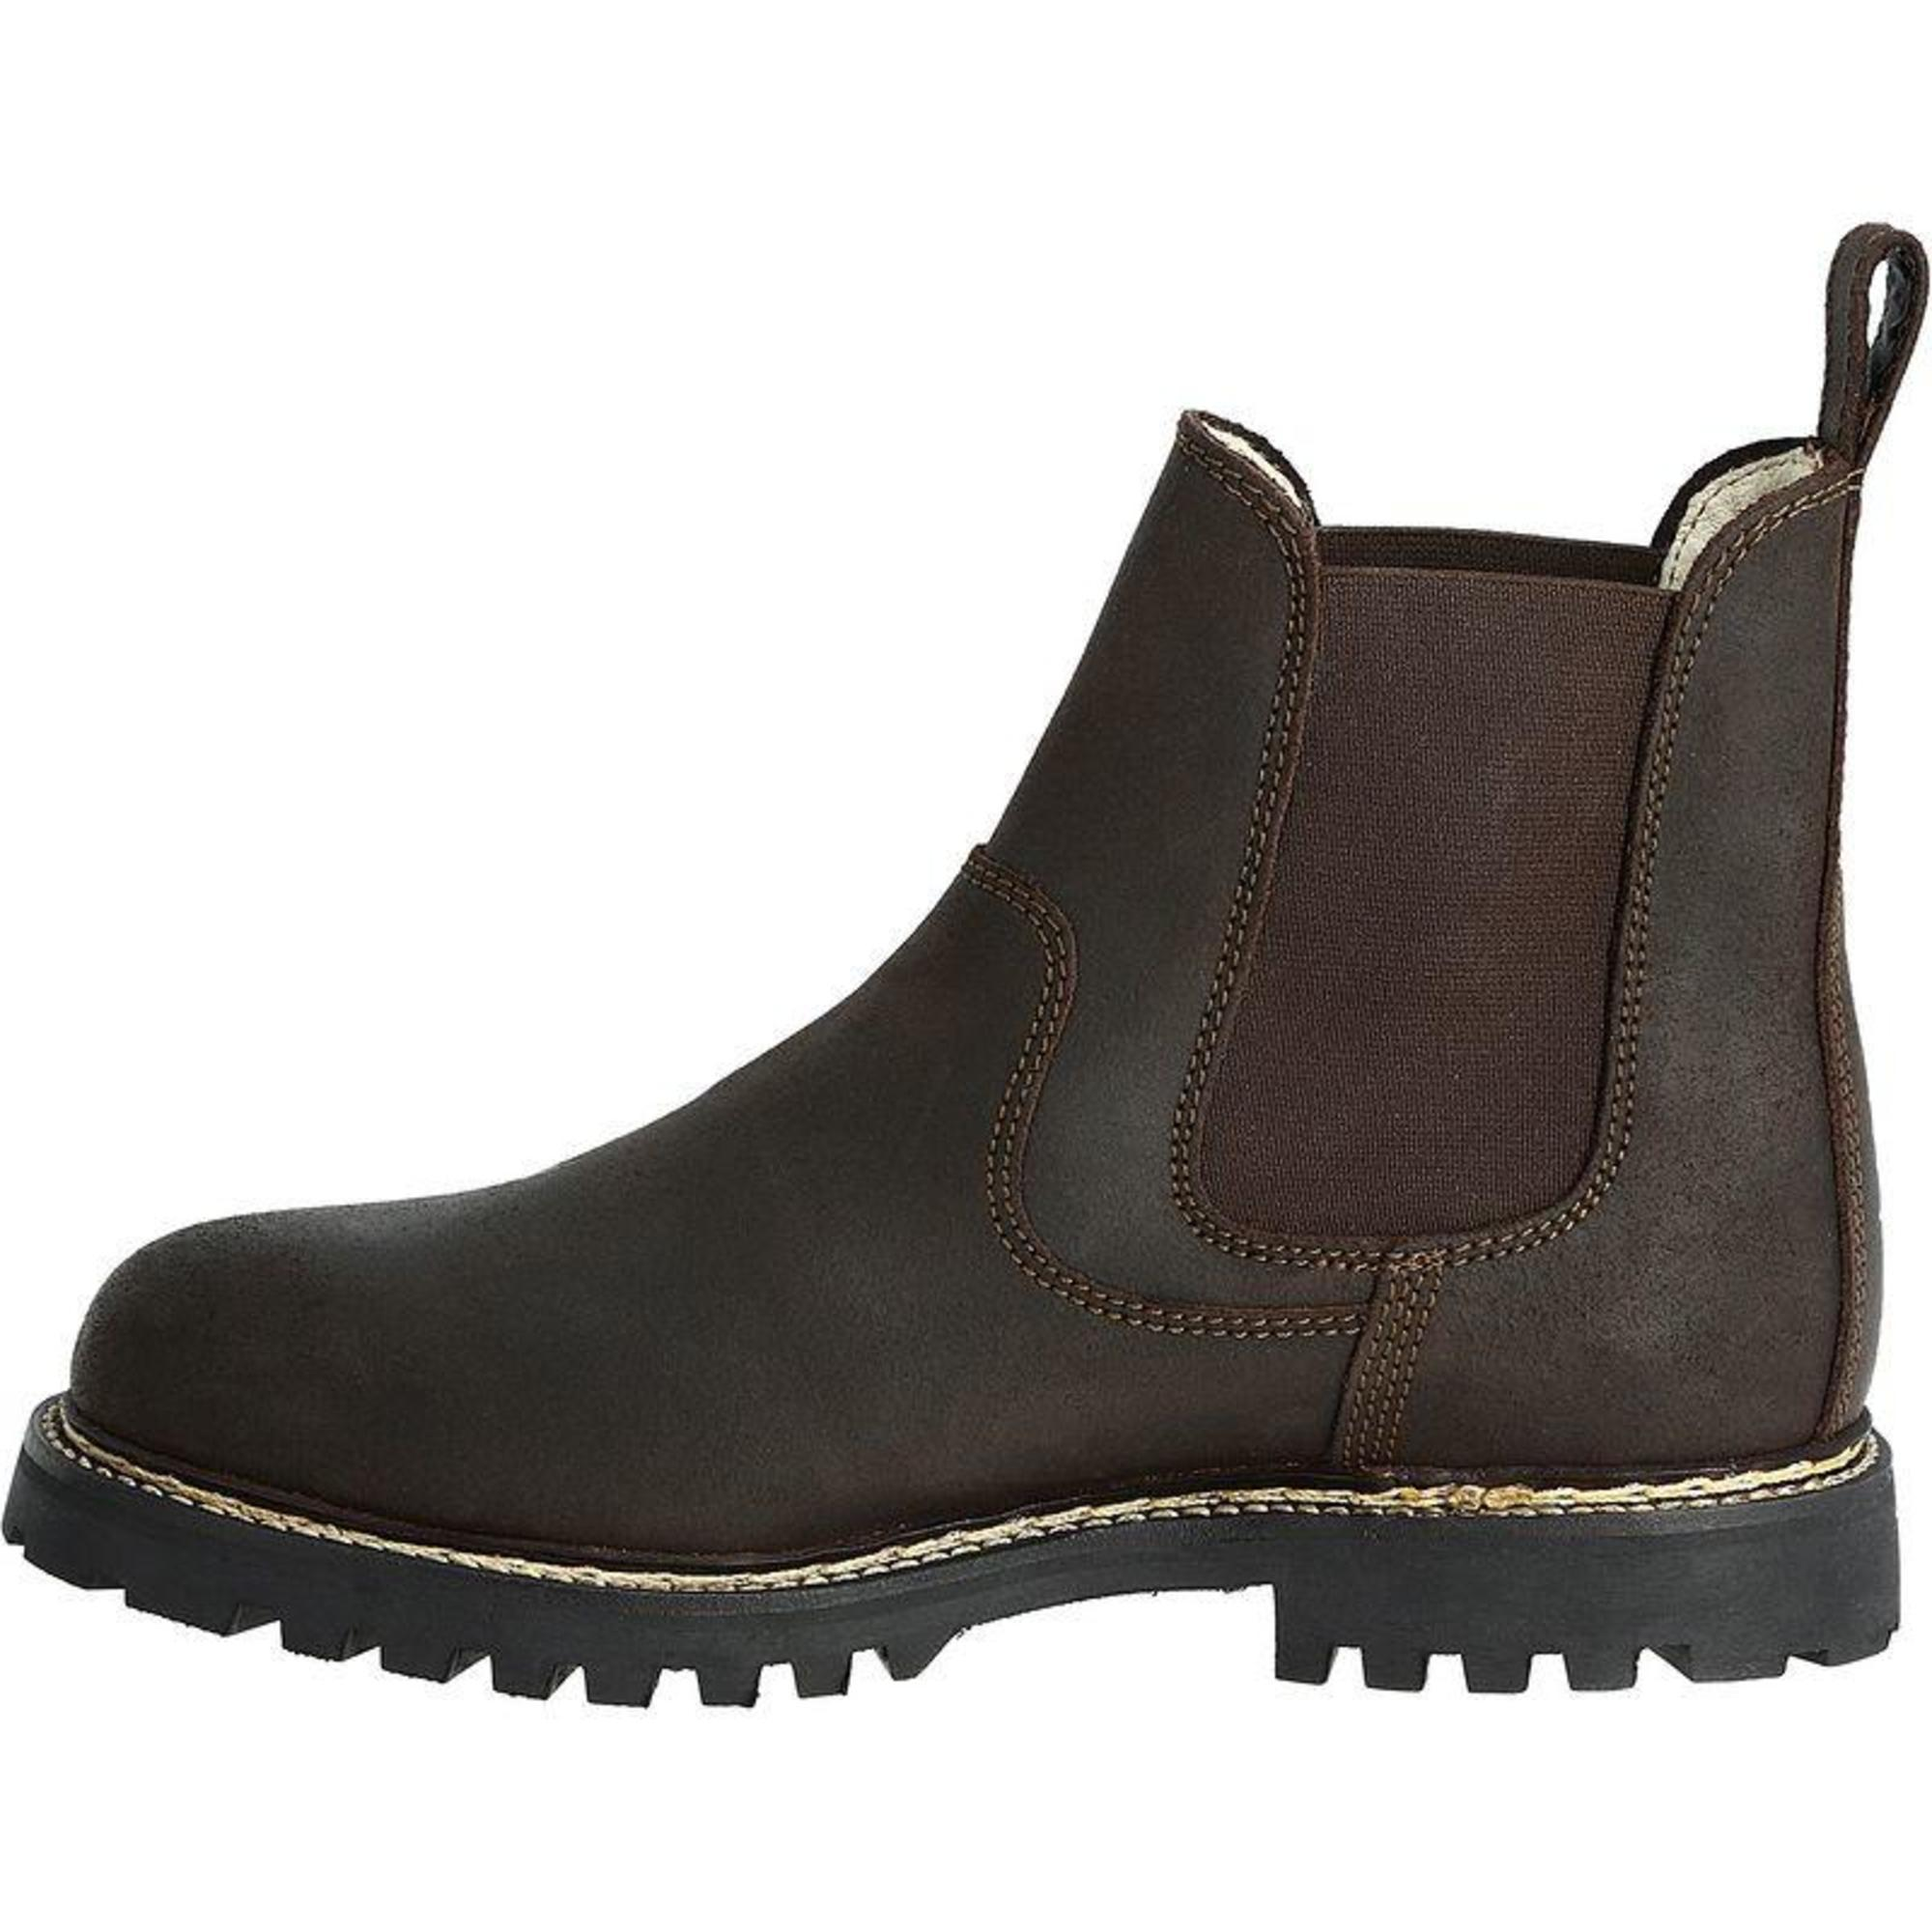 Fouganza 900 Adult Horse Riding Leather Boots Jodhpur Brown All Sizes Waterproof